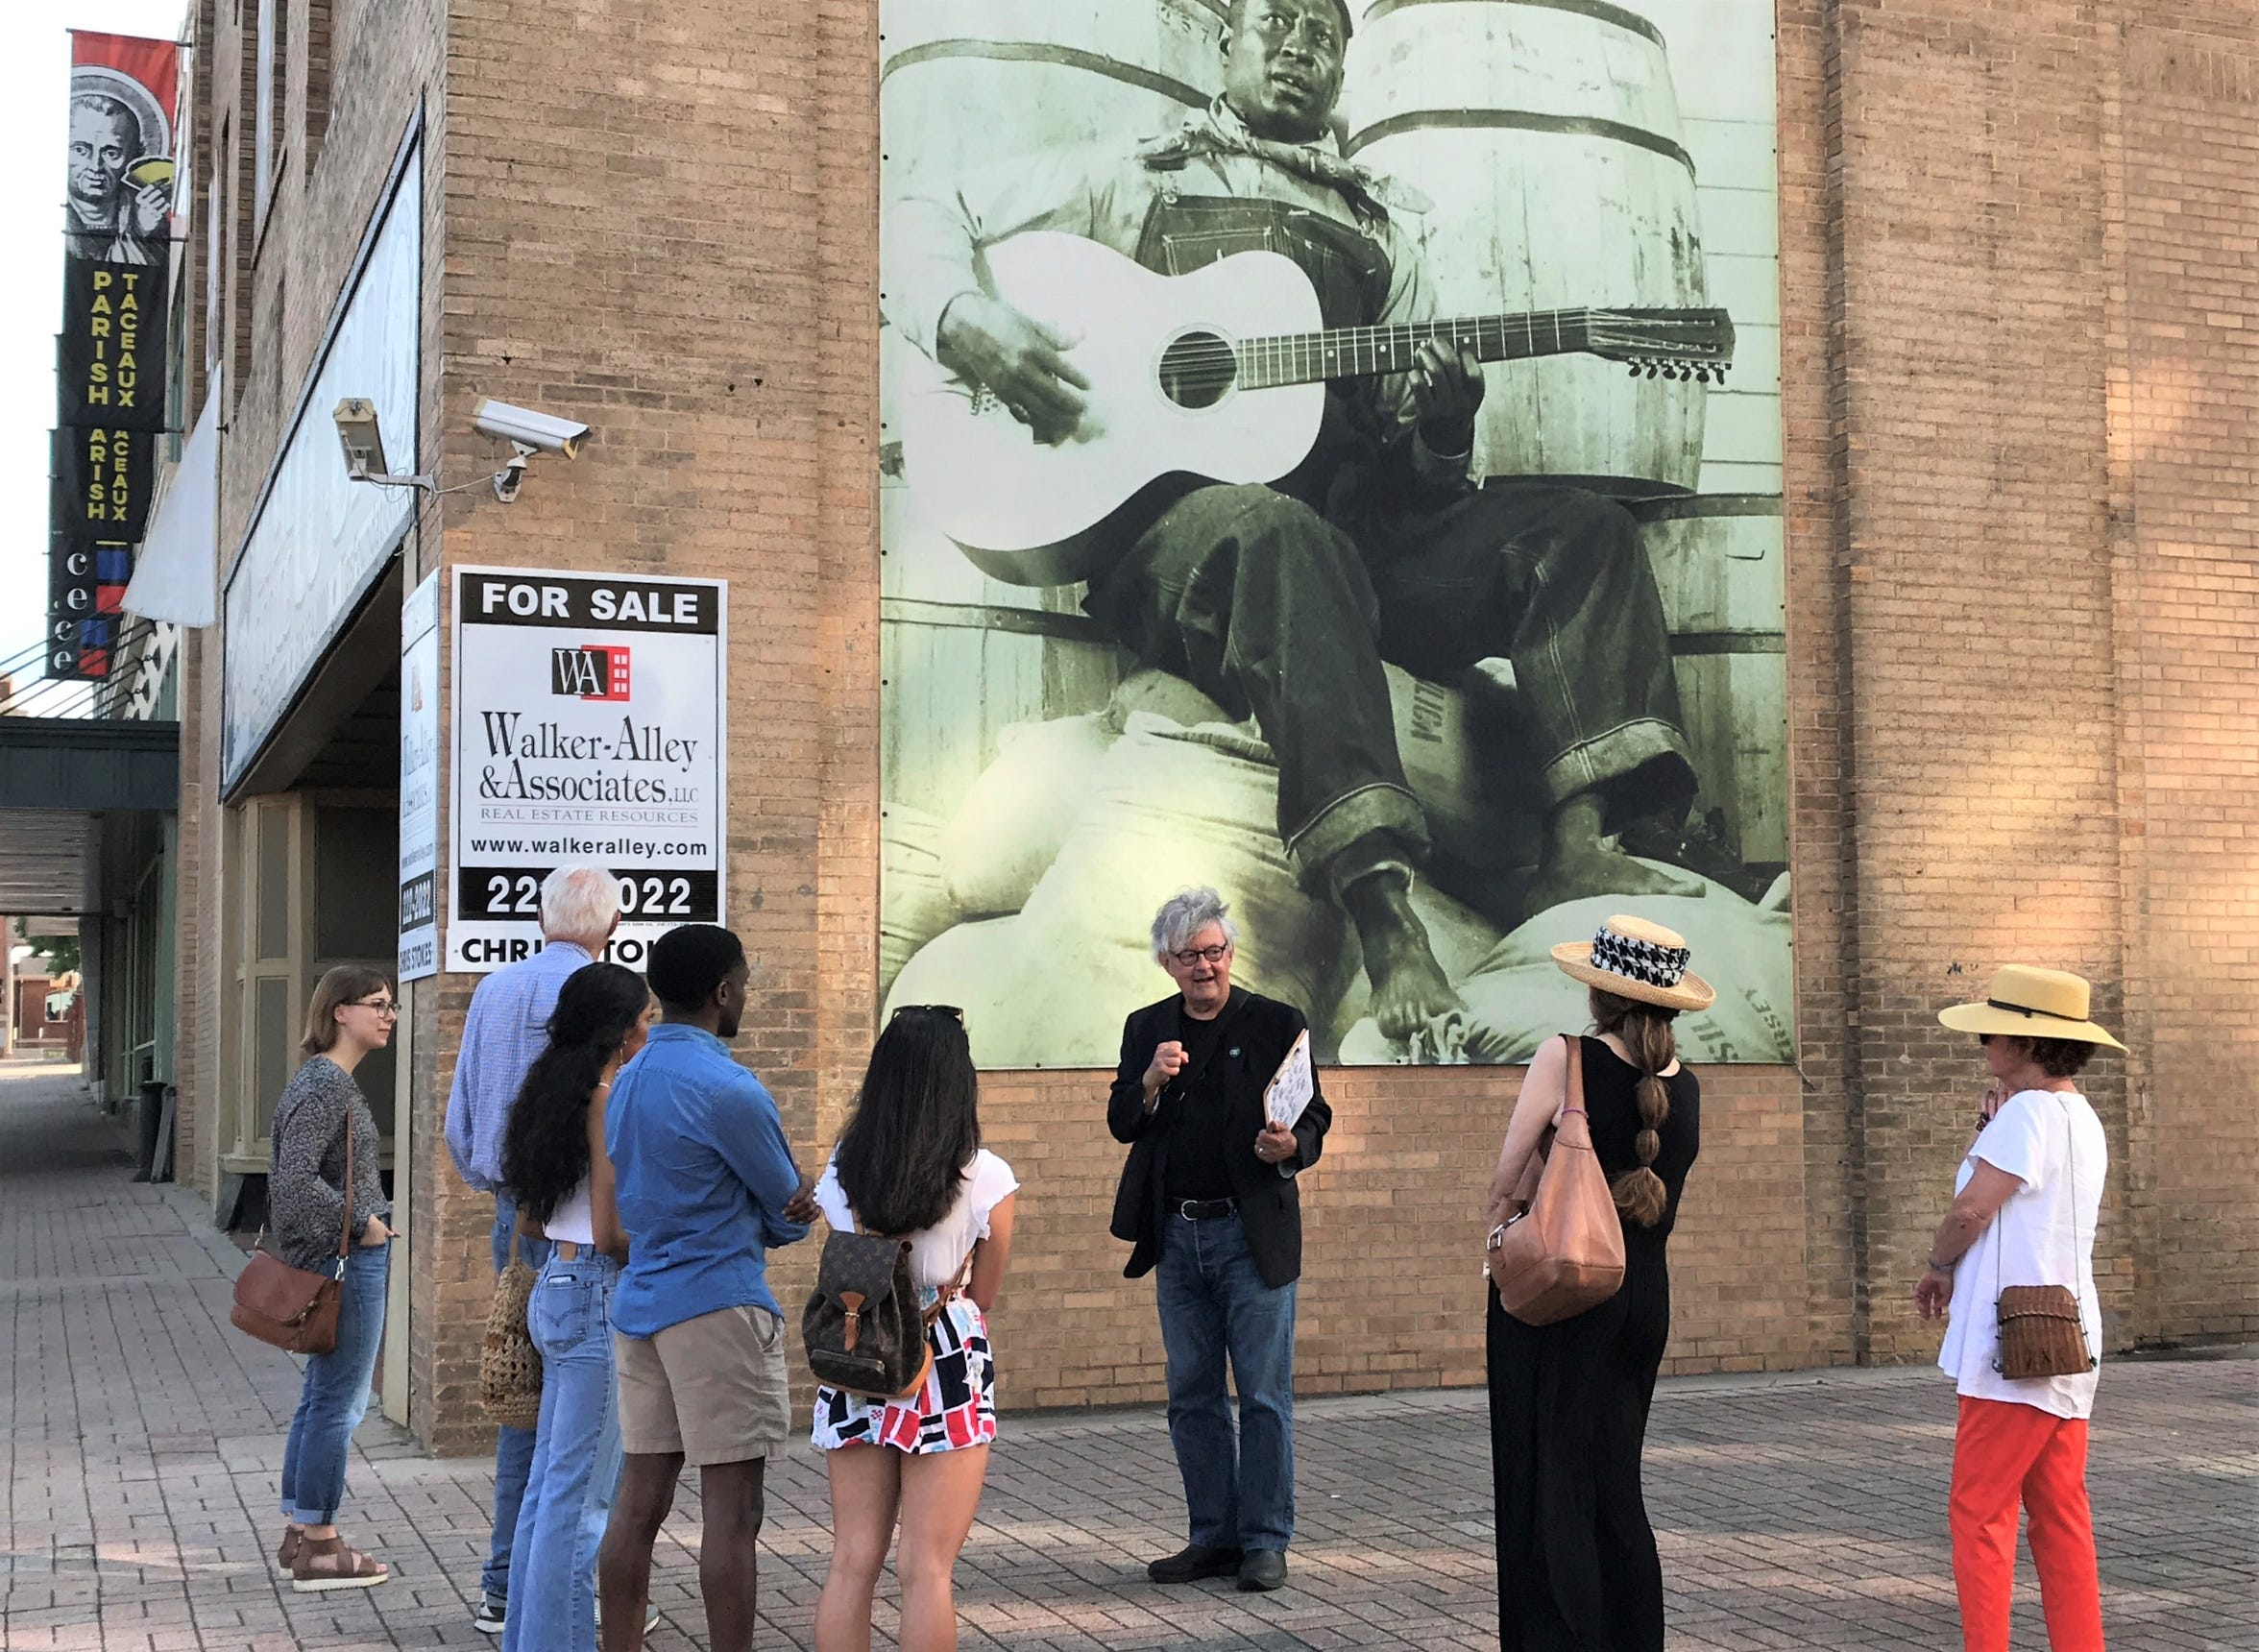 Robert Trudeau talks about the iconic image of Lead Belly on the Music Co-Op building downtown.